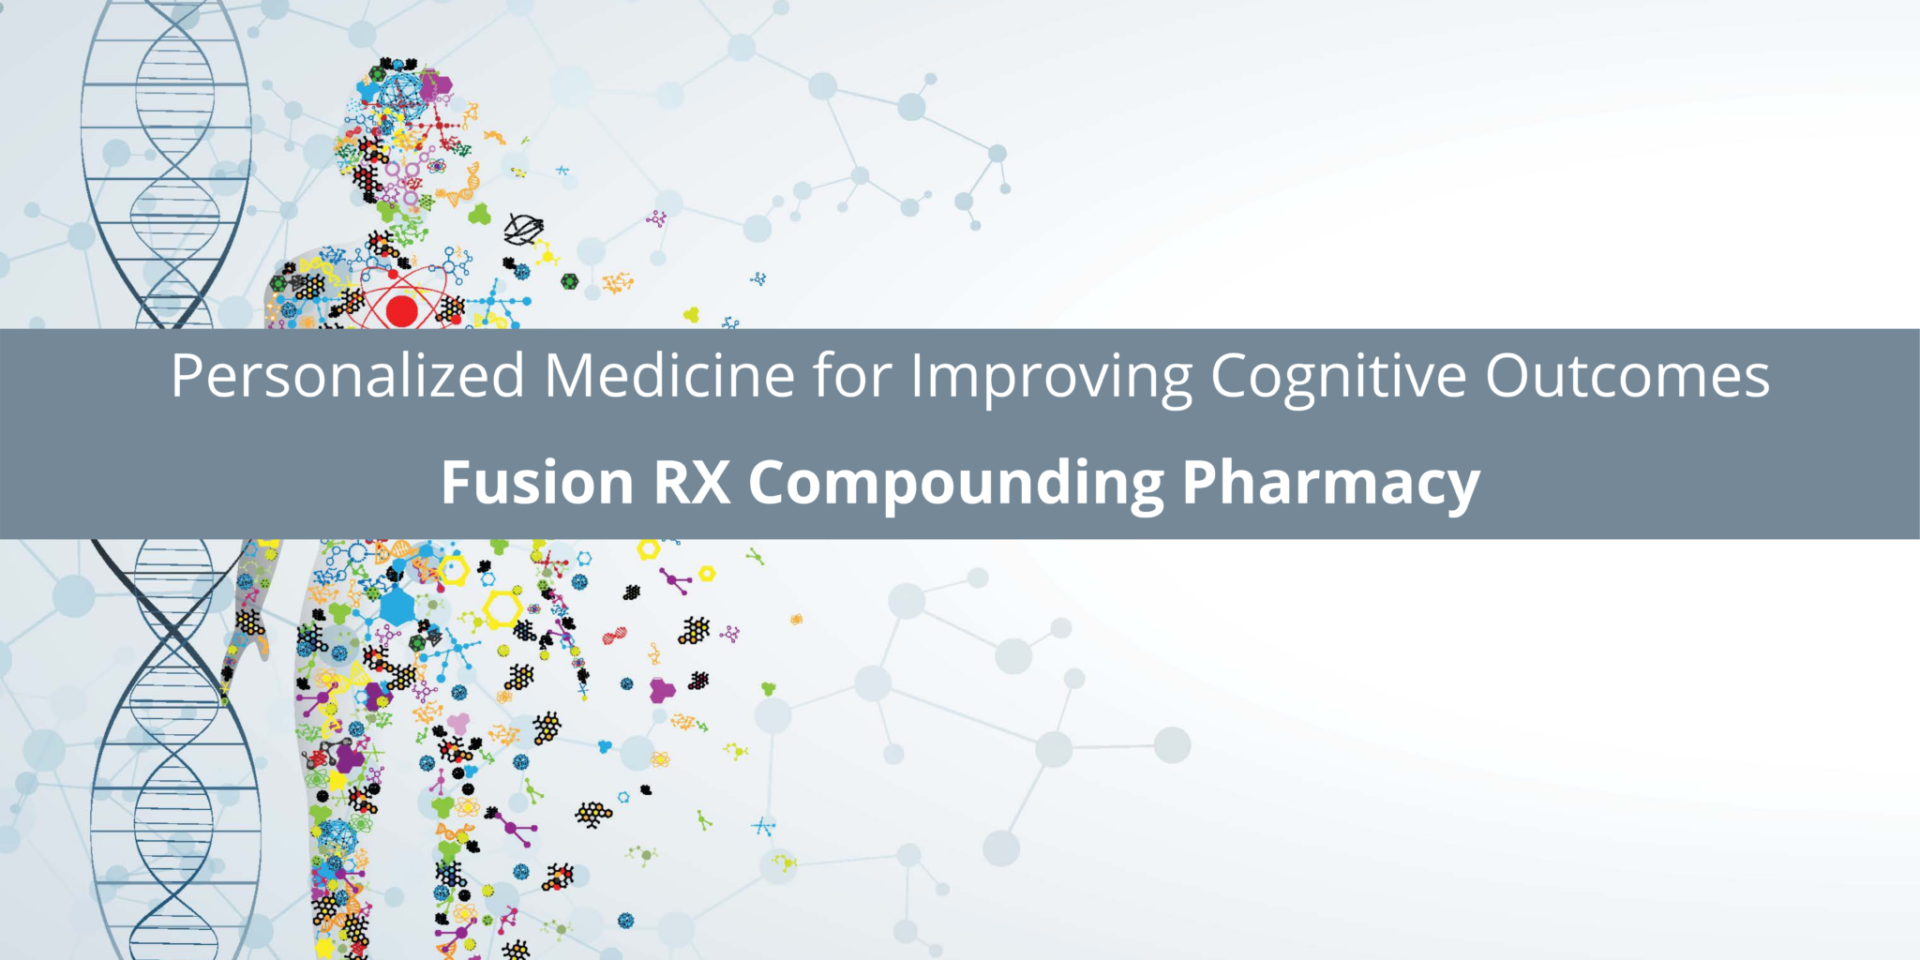 Fusion RX Compounding Pharmacy Helps With Personalized Medicine for Improving Cognitive Outcomes